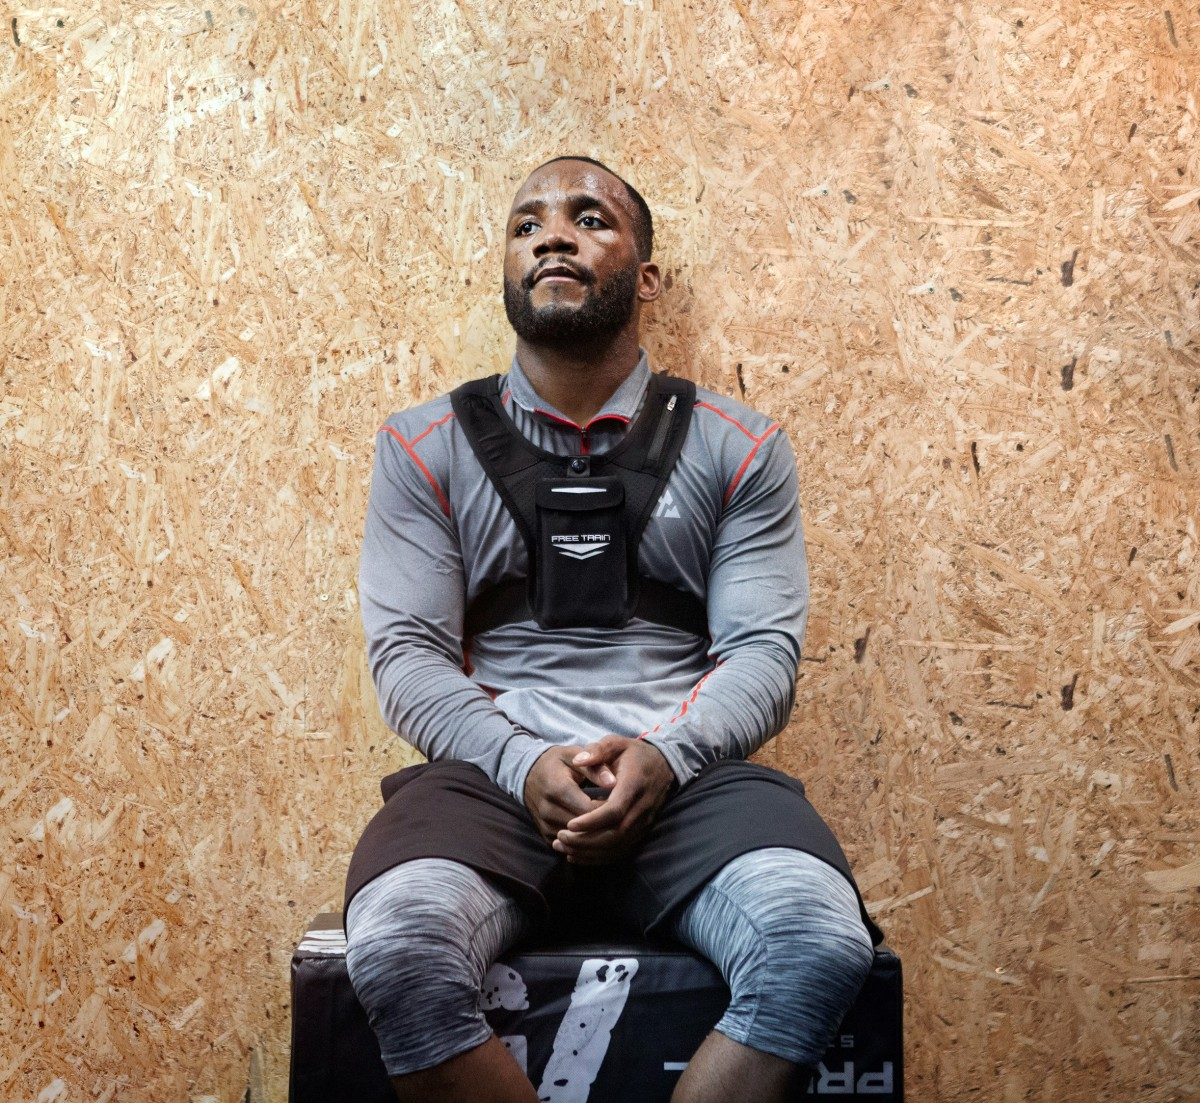 UFC ANNOUNCE PARTNERSHIP WITH 'FREETRAIN' FOR LEON EDWARDS IN HIS UPCOMING FIGHT WITH NATEDIAZ